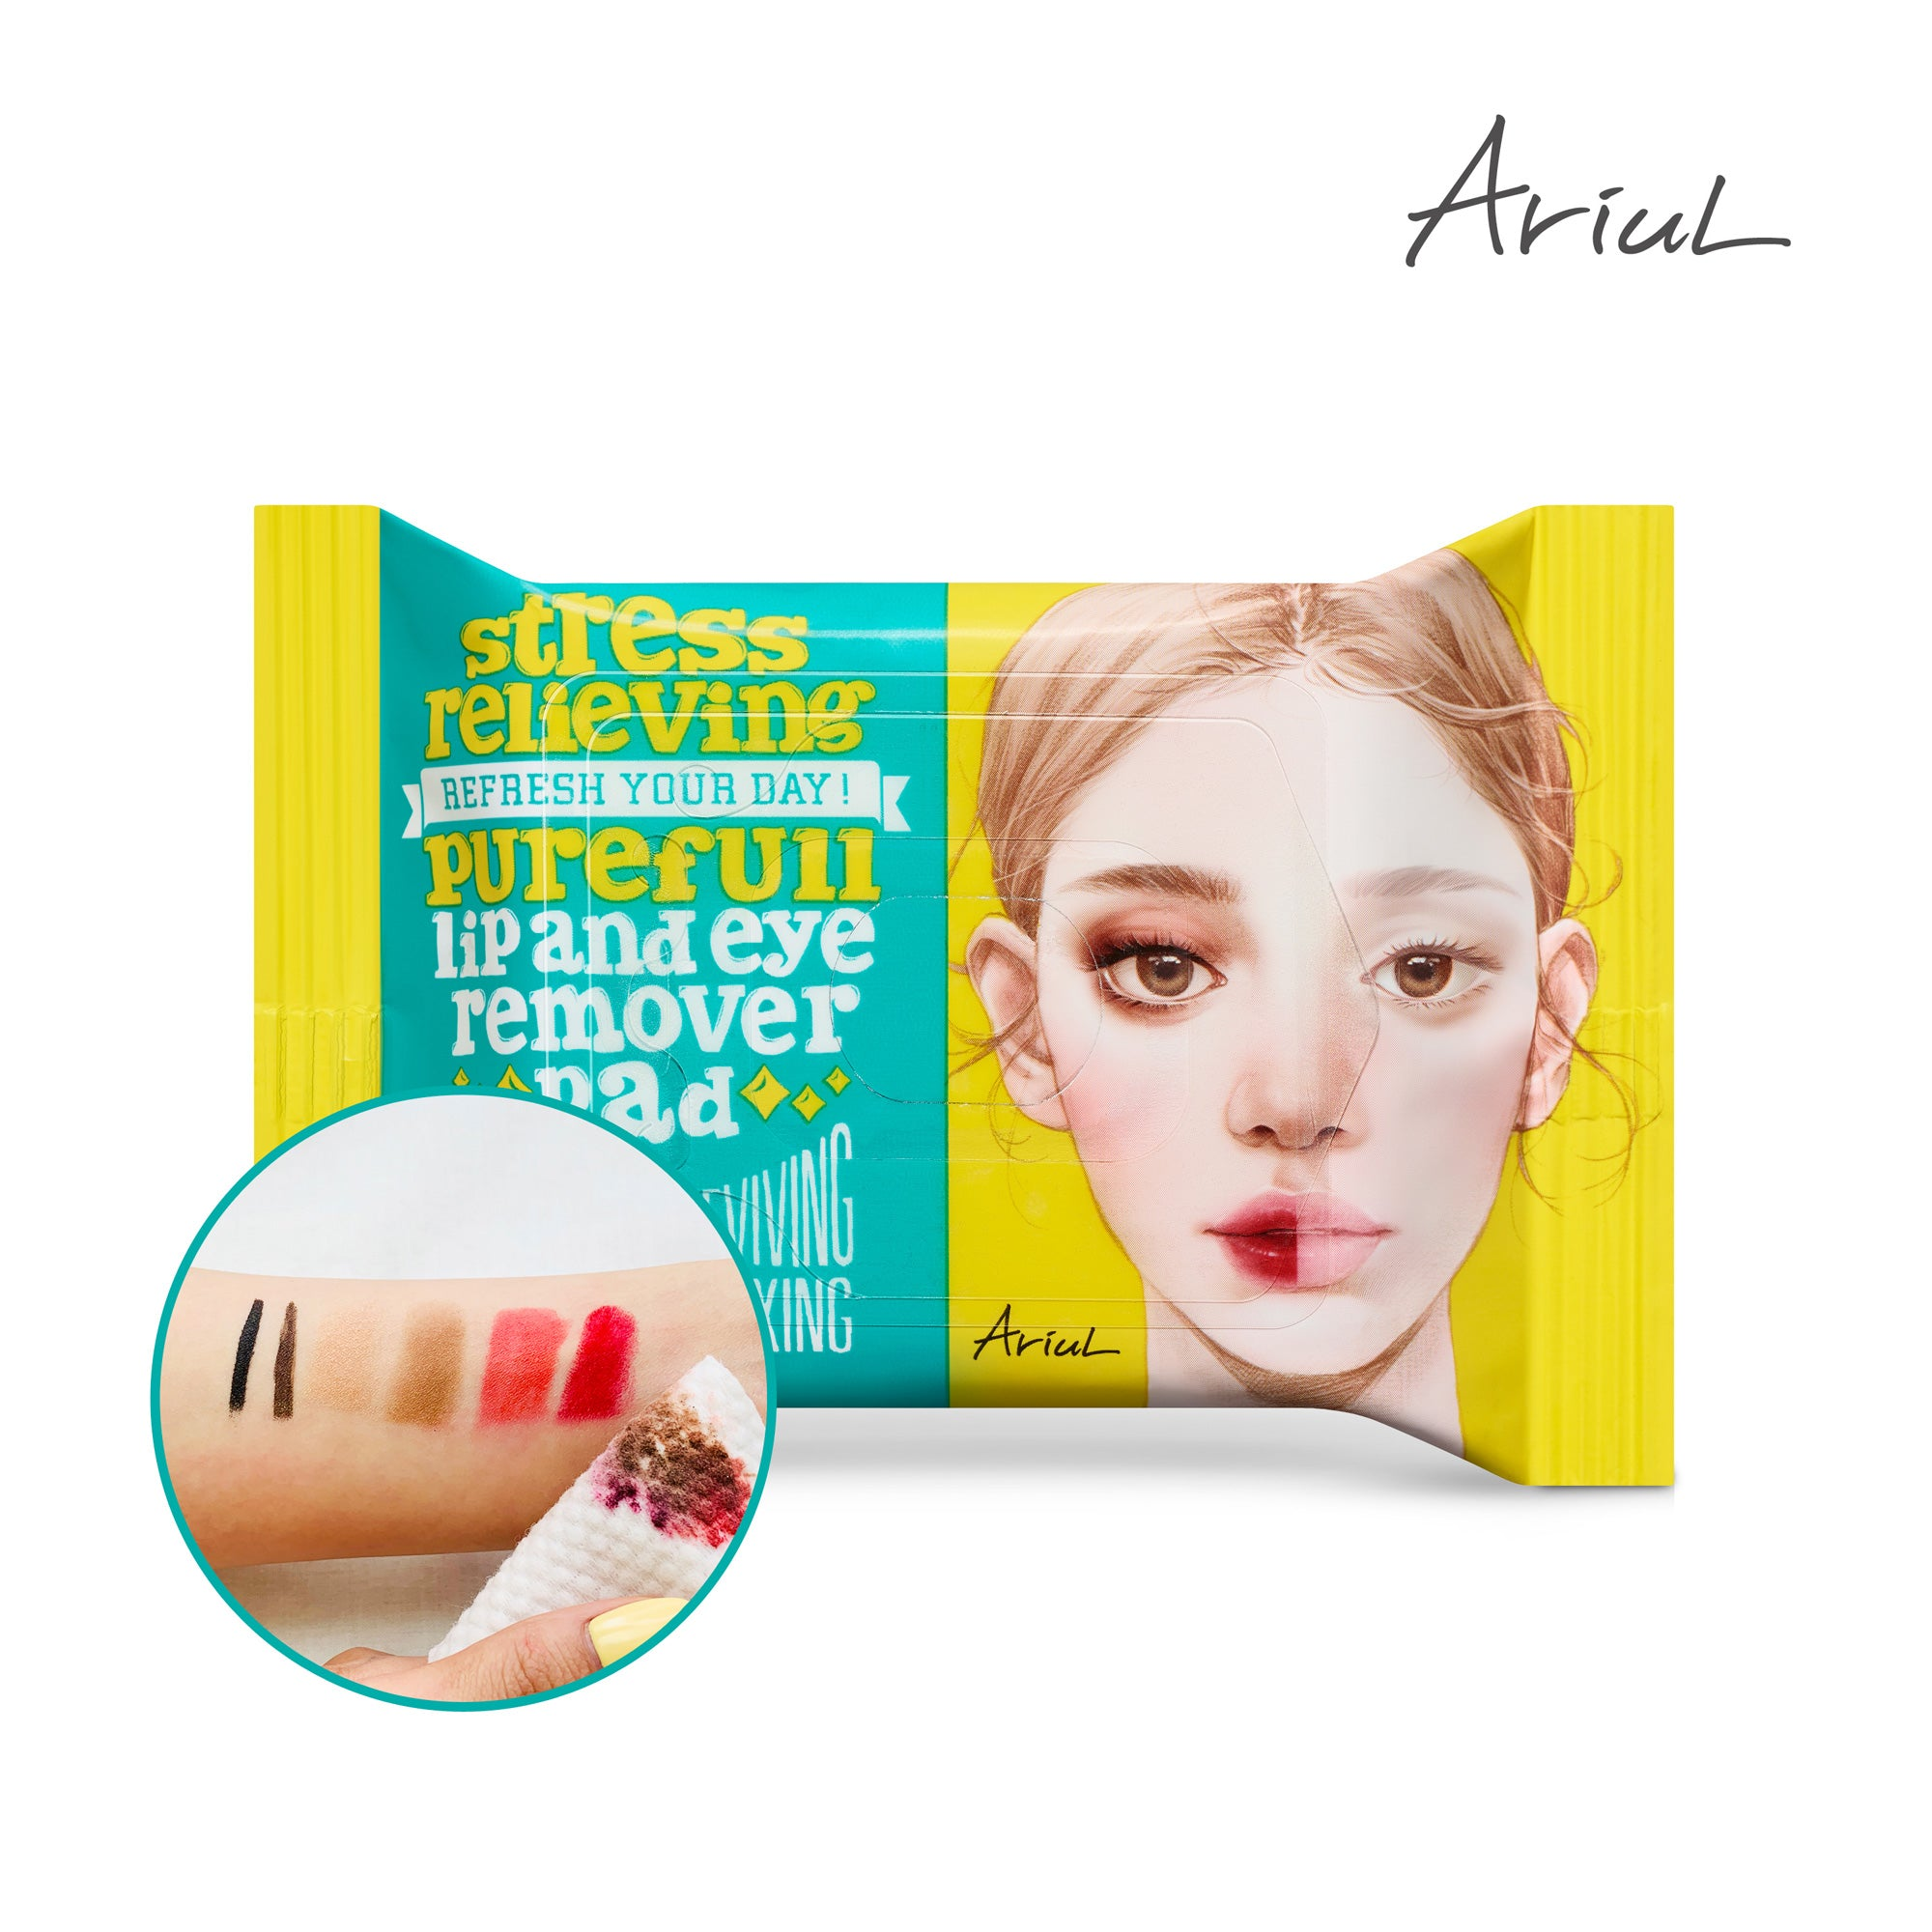 Jetour Mall ARIUL極淨舒壓眼唇卸妝棉 (30片)Ariul Stress Relieving Lip and Eye Remover Pad (30 Sheets)